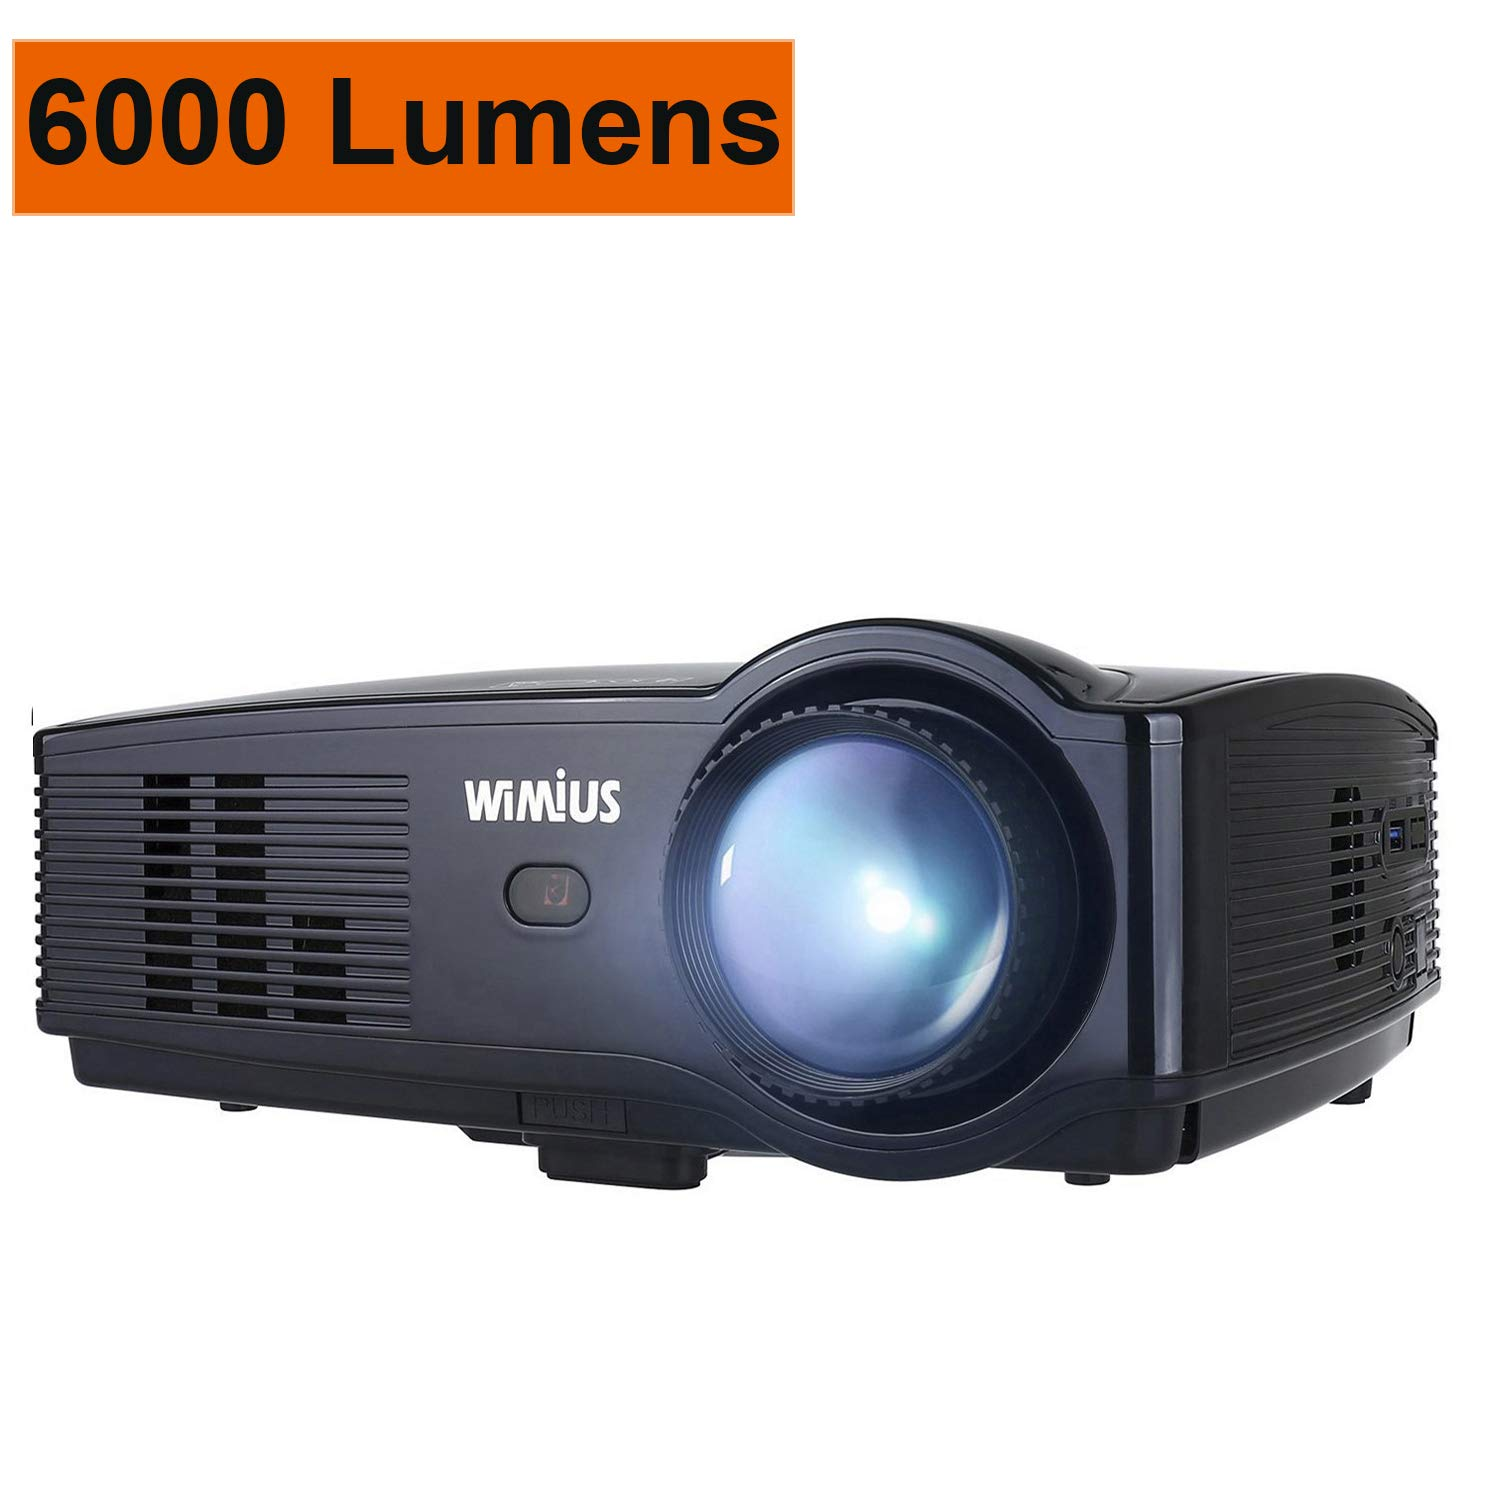 WiMiUS Projector, 6000 Lumens Full HD 1080P and 200'' Display Supported, Video Projector with 50,000 Hrs LED Life, Compatible with TV Stick, PS4, HDMI, VGA, AV, USB and Smartphones